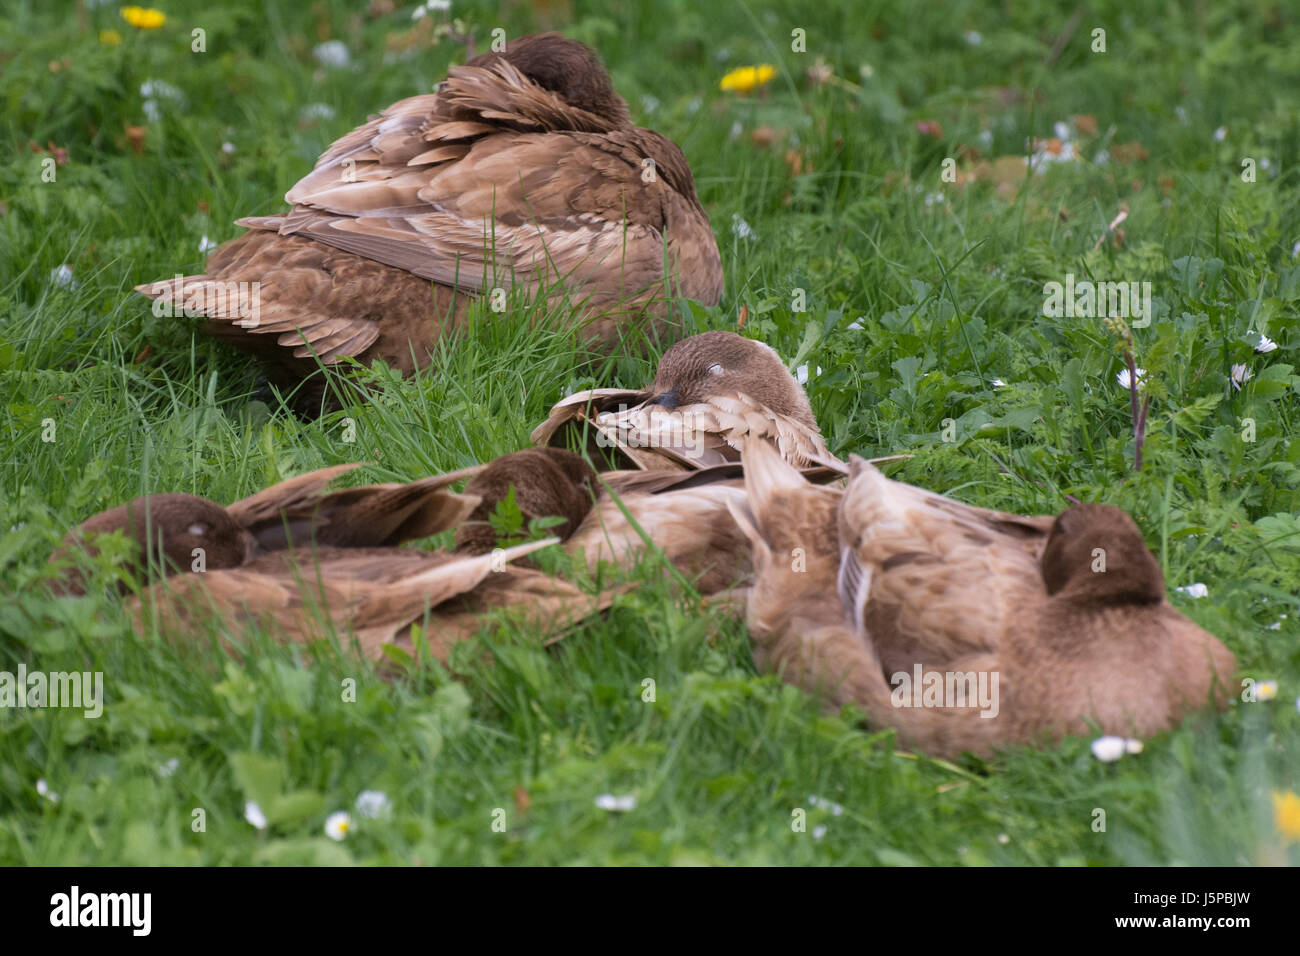 A small flock of Khaki Campbell domestic ducks sleep peacefully in a grassy garden. - Stock Image